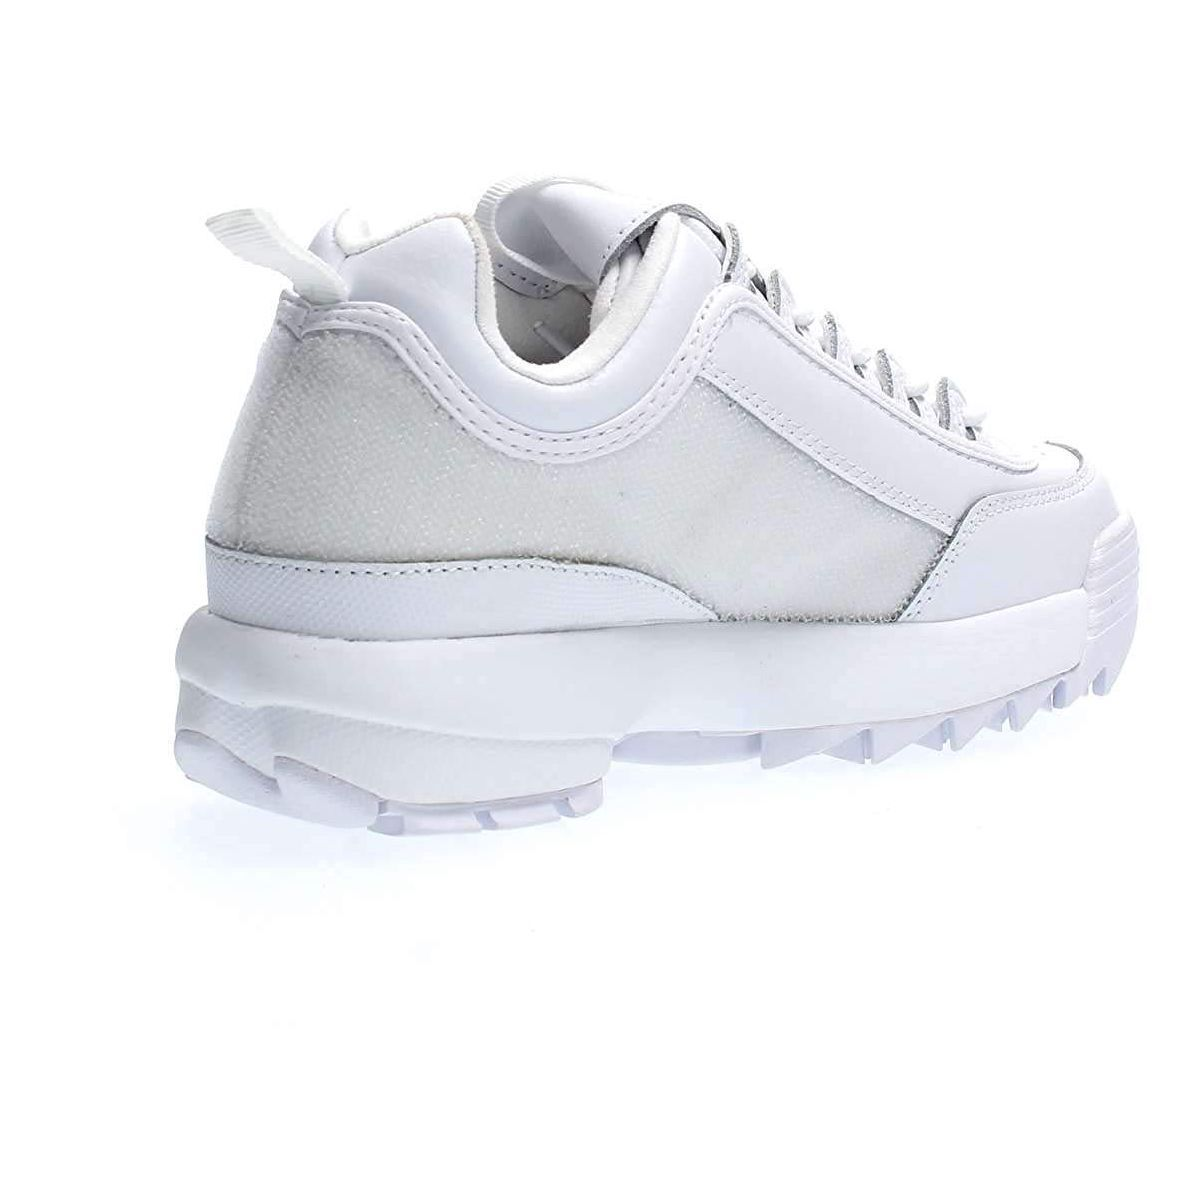 Fila femme disruptor 2 patches blanc1179601_6